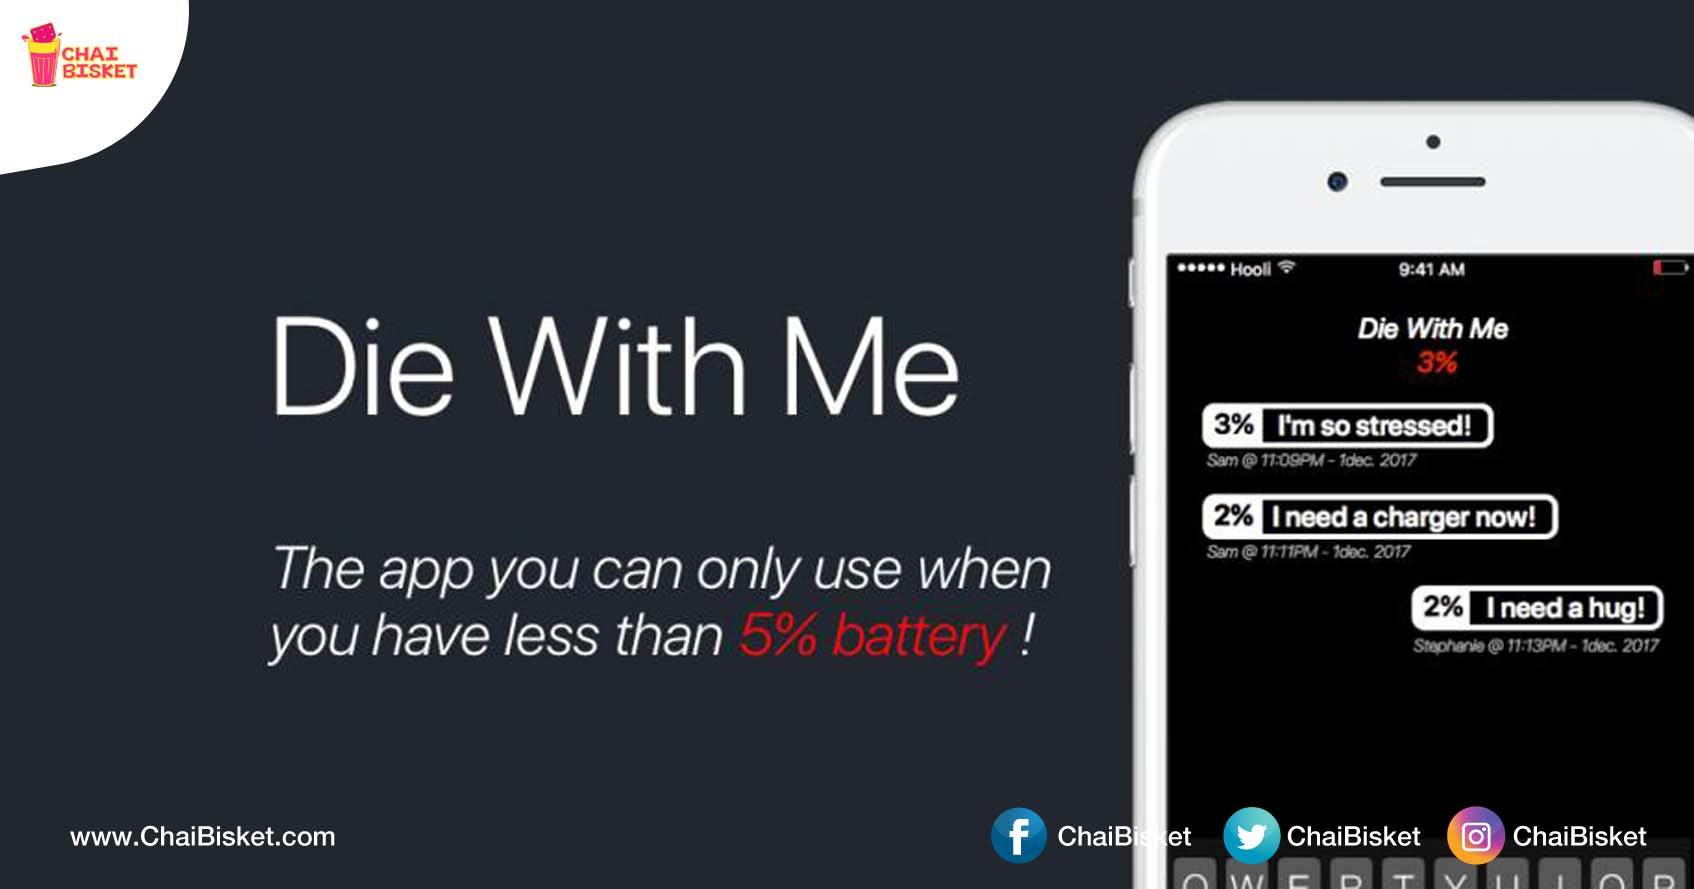 This New App Lets You Chat With Strangers Only When Your Battery Is